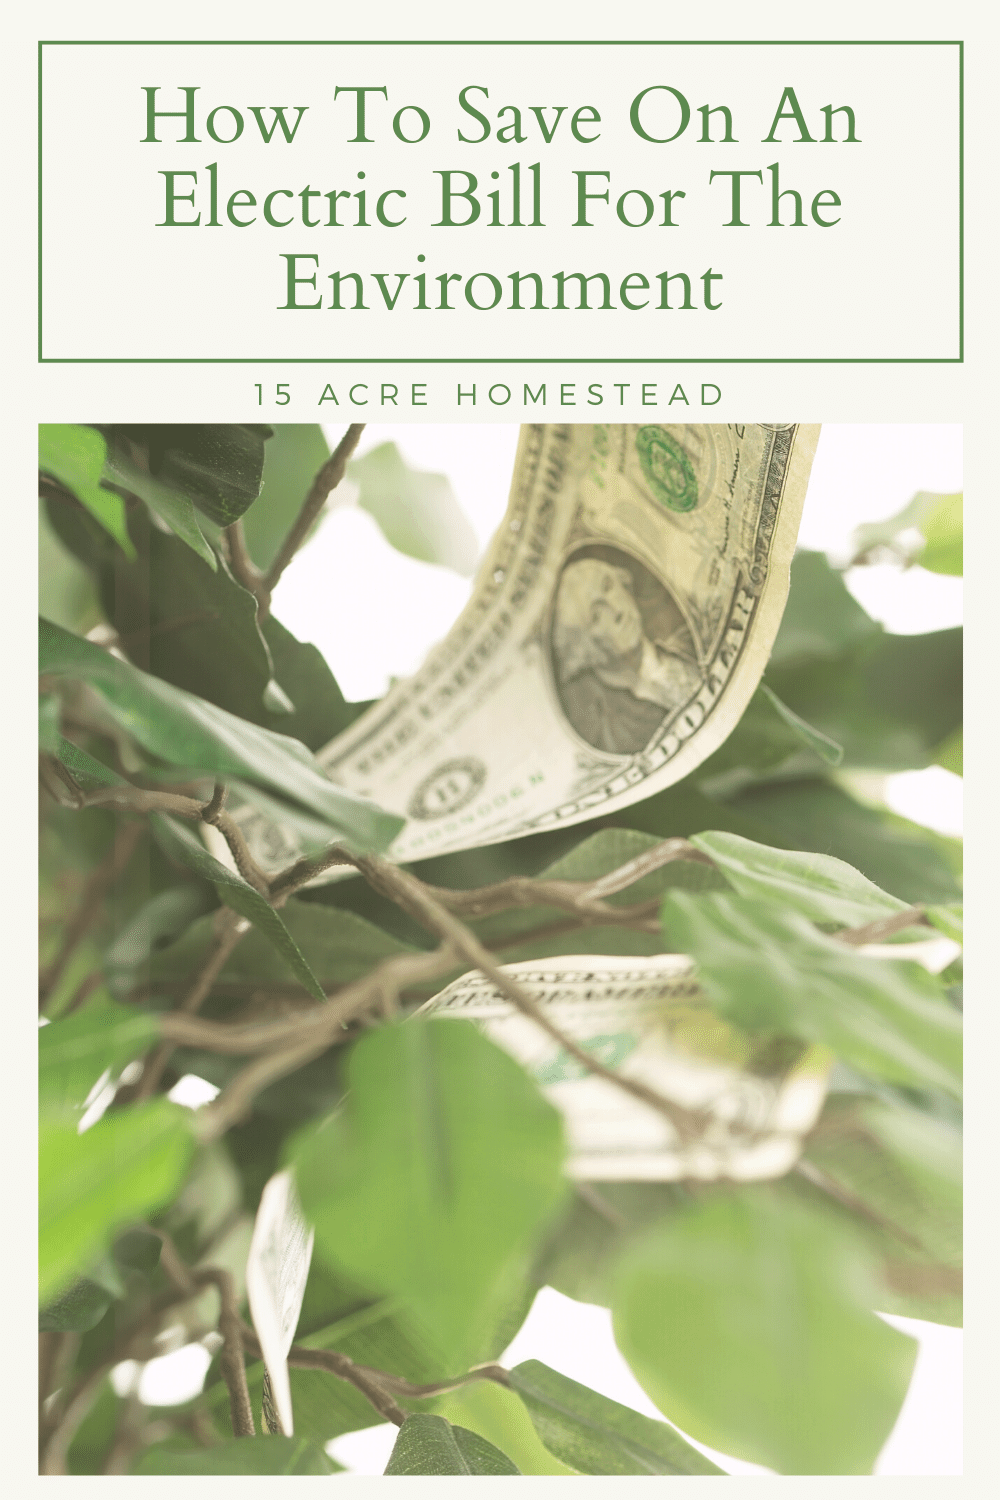 These tips can save the environment and cut back on your electric bill as well.